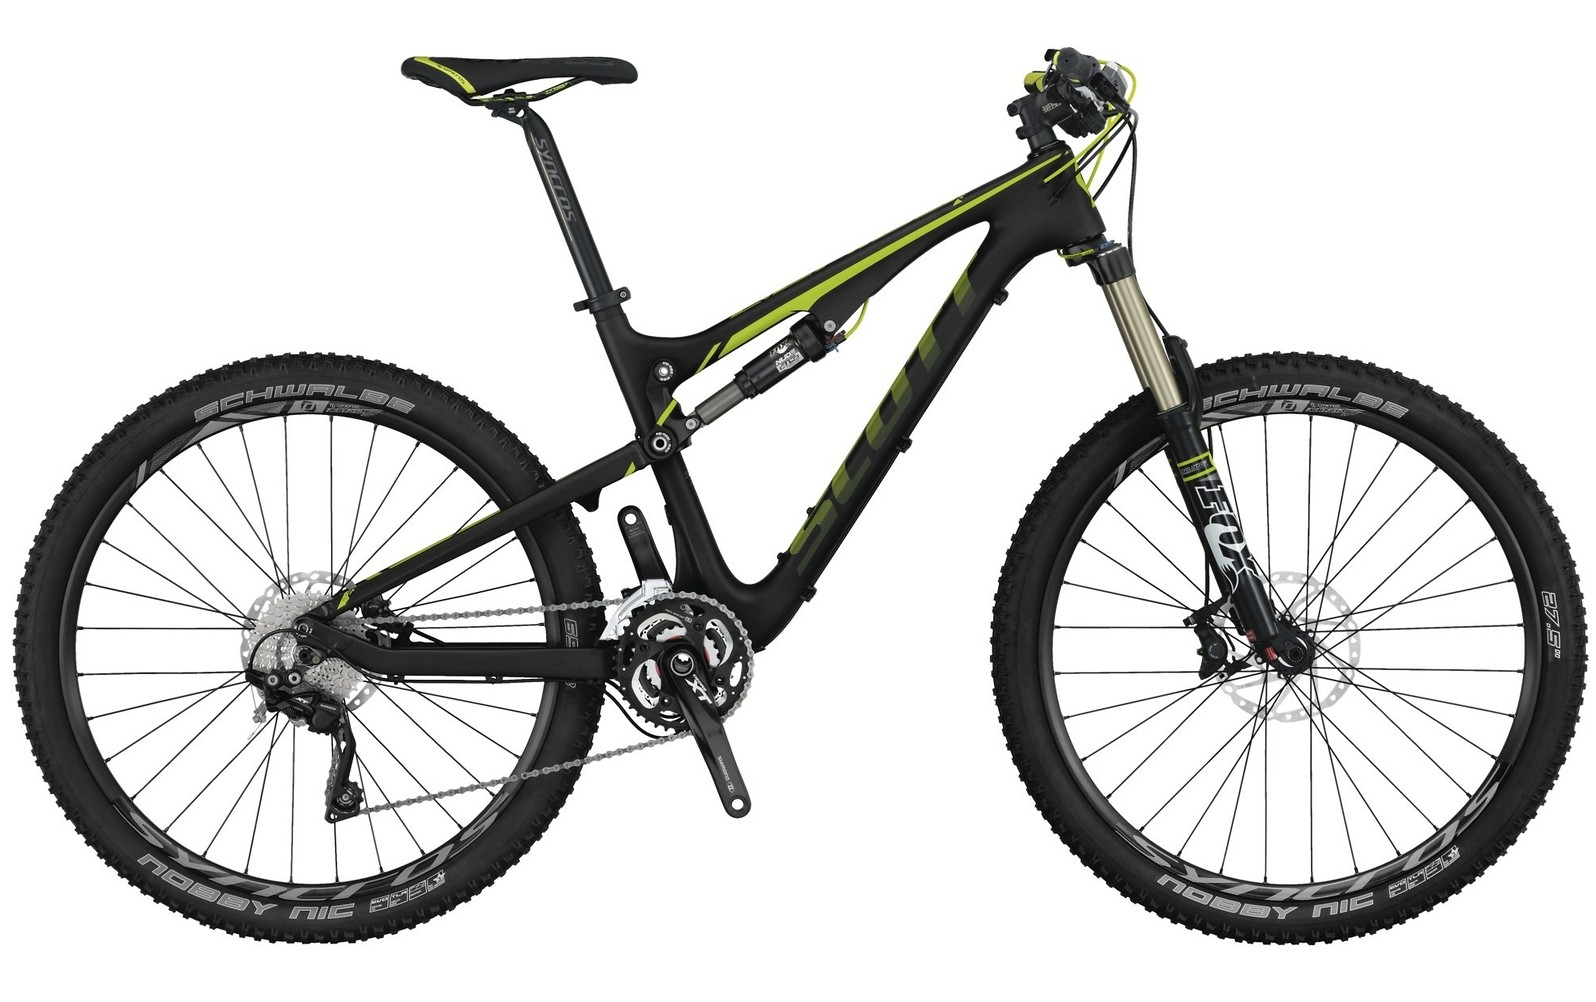 B01M0RYUIQ likewise Flatline World Cup 1683 in addition Bronson Carbon With XX1AM27ENVE Build 12022 furthermore 600mm Claw Pick Up Tool 56970 P furthermore 2003 2010 Husqvarna 235e 236e 240e Trio Brake Chainsaw Owners Manual. on car audio product